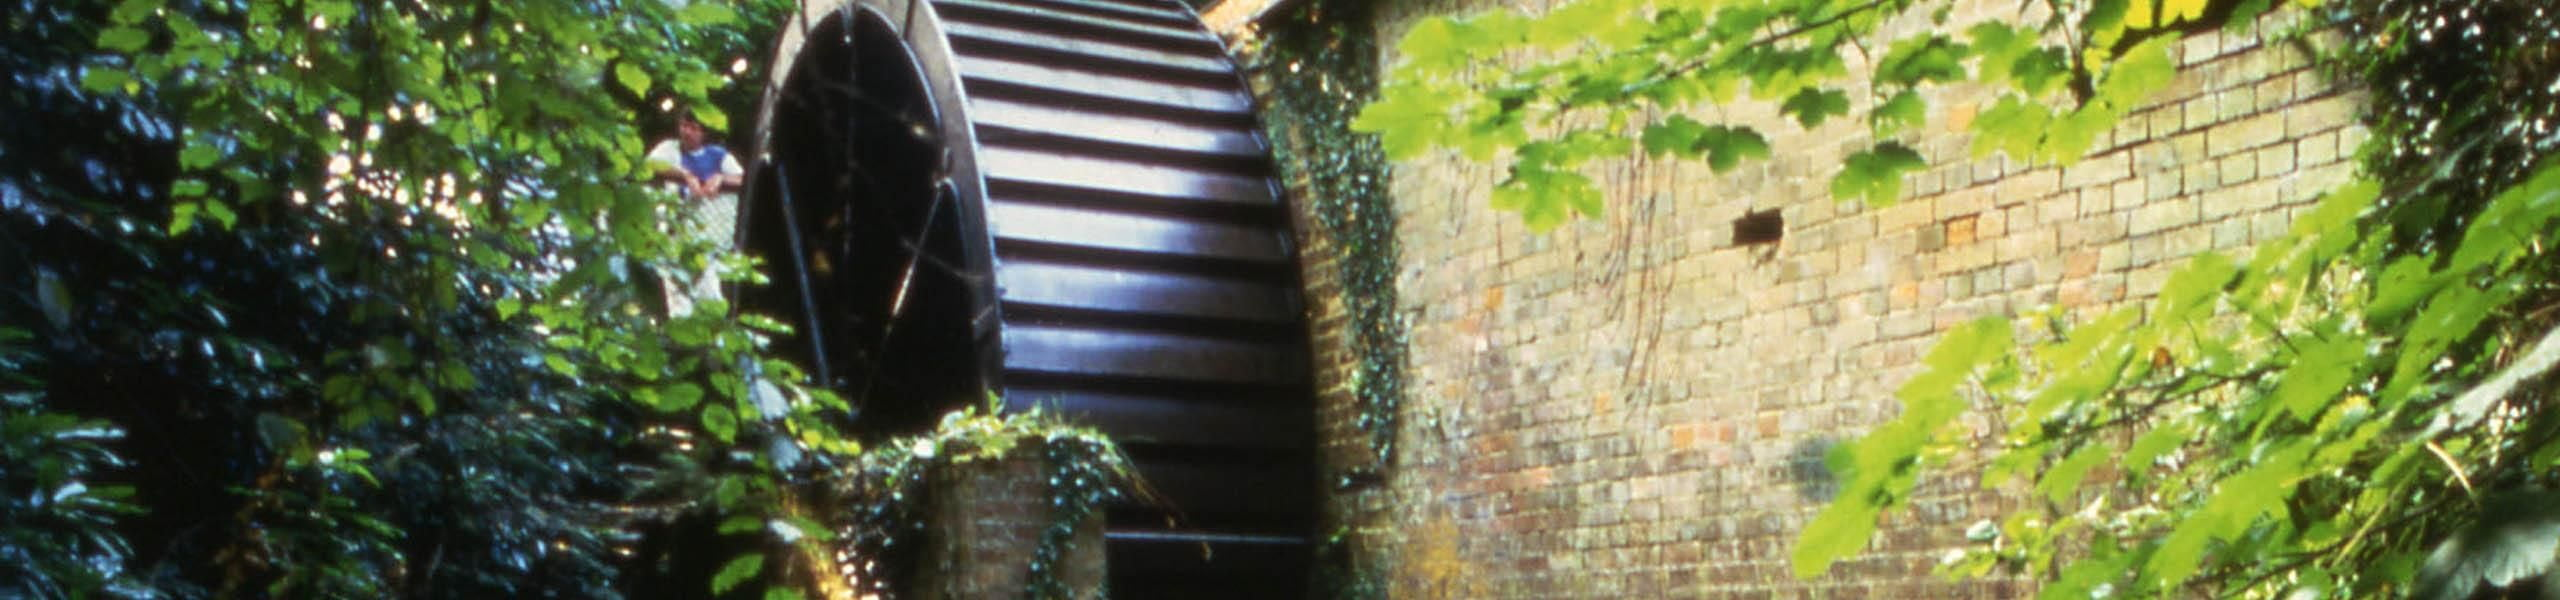 Visit The Water Mill, Over 150 years Old | Paultons Park